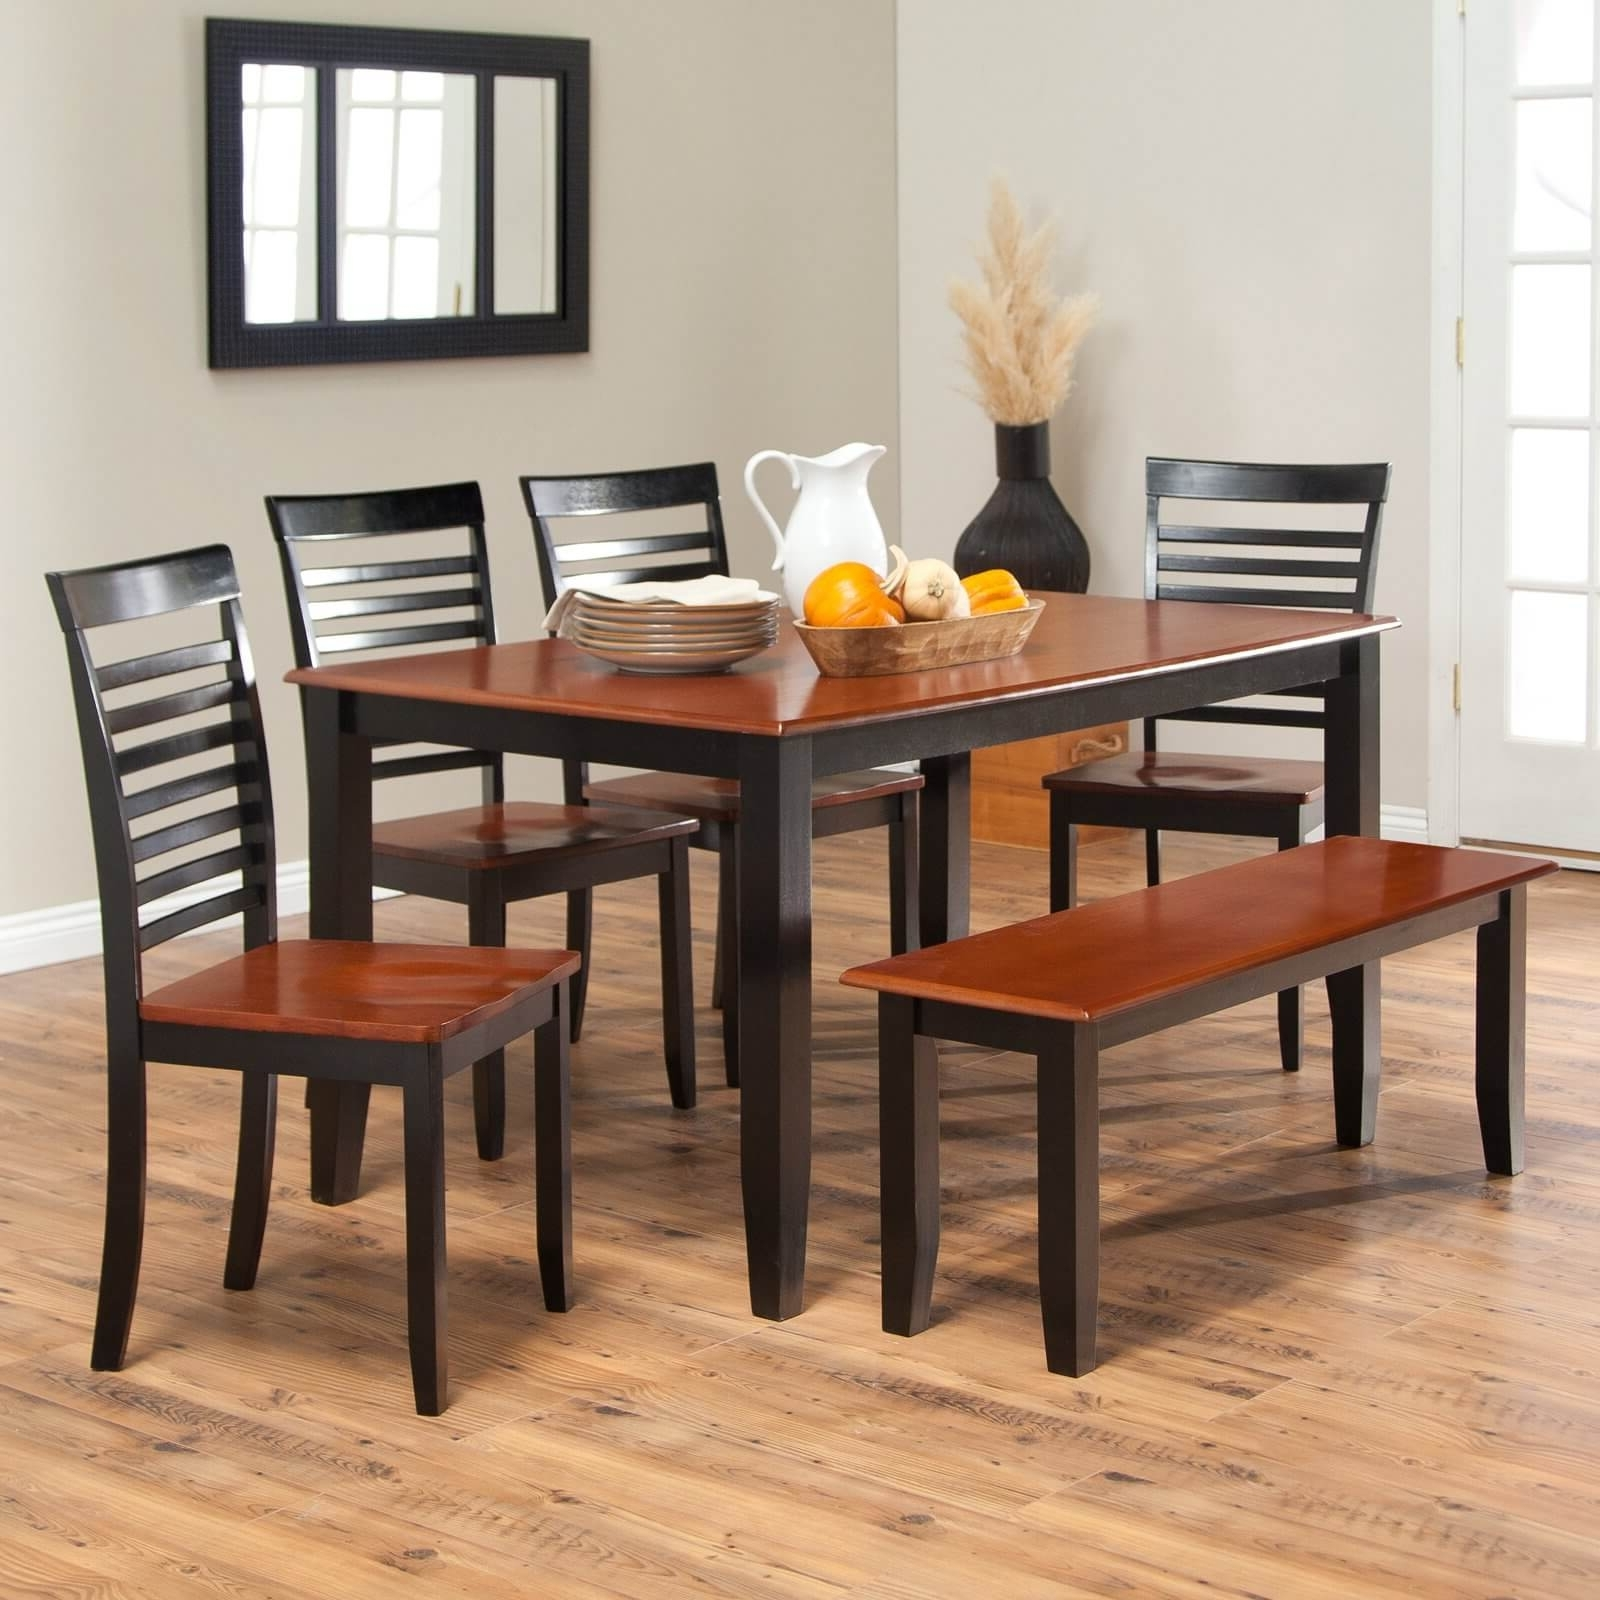 Craftsman 5 Piece Round Dining Sets With Uph Side Chairs Inside Favorite 26 Dining Room Sets (Big And Small) With Bench Seating (2018) (View 8 of 25)